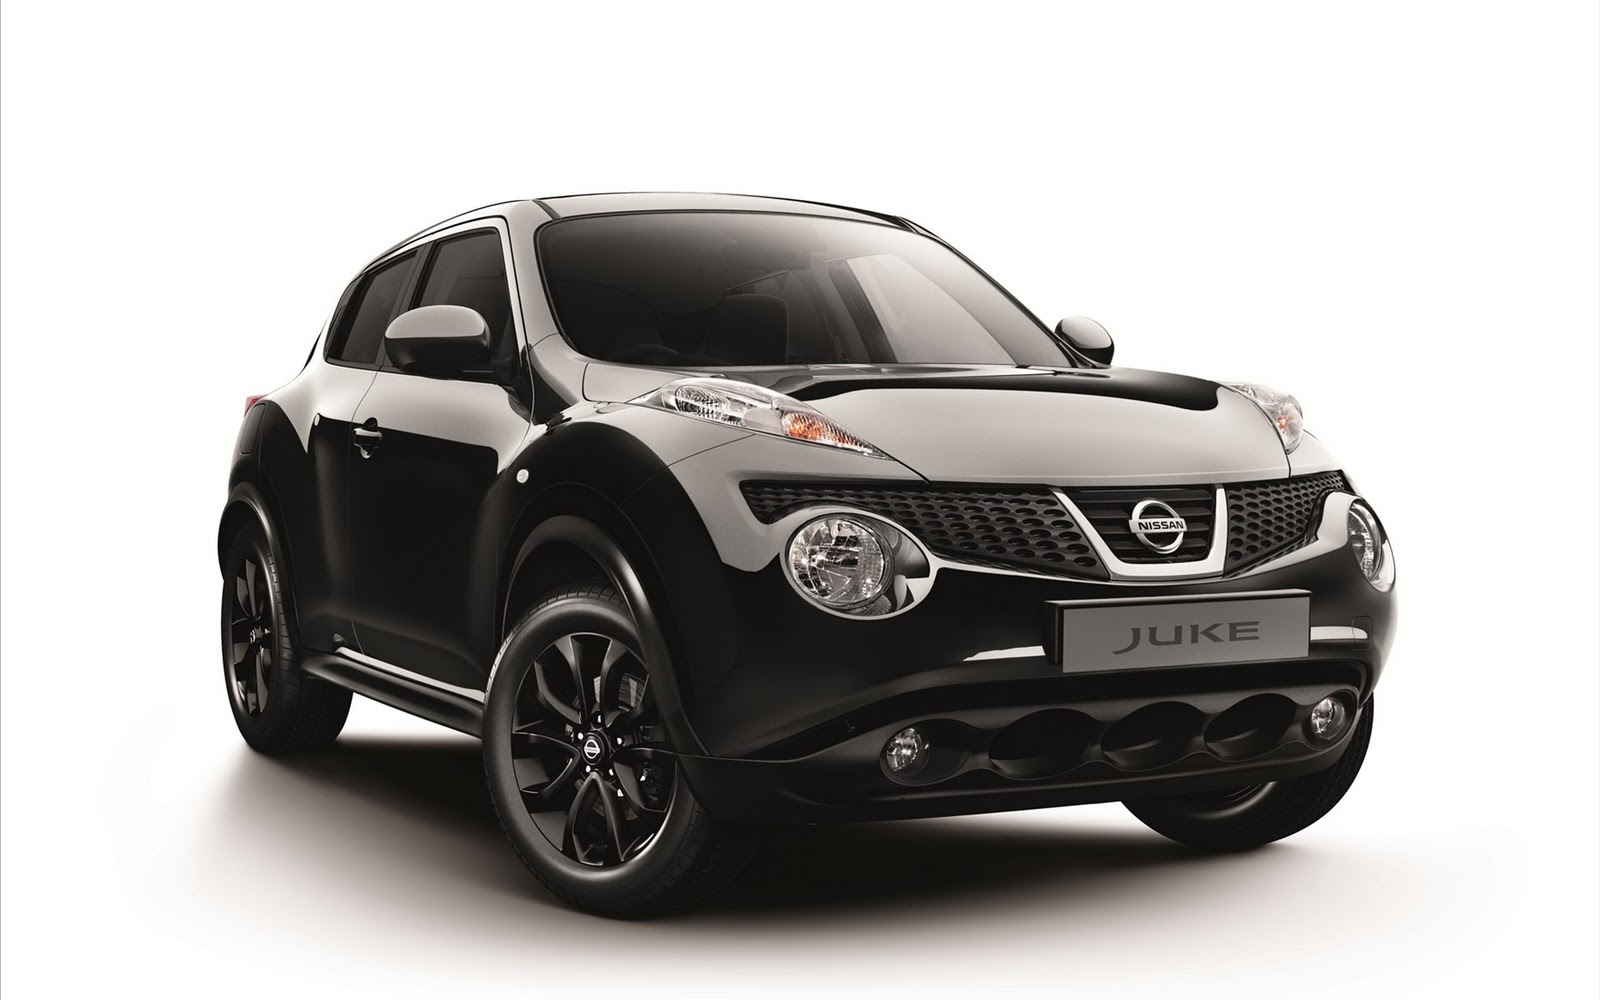 kendall self drive 2012 nissan juke kuro edition review. Black Bedroom Furniture Sets. Home Design Ideas